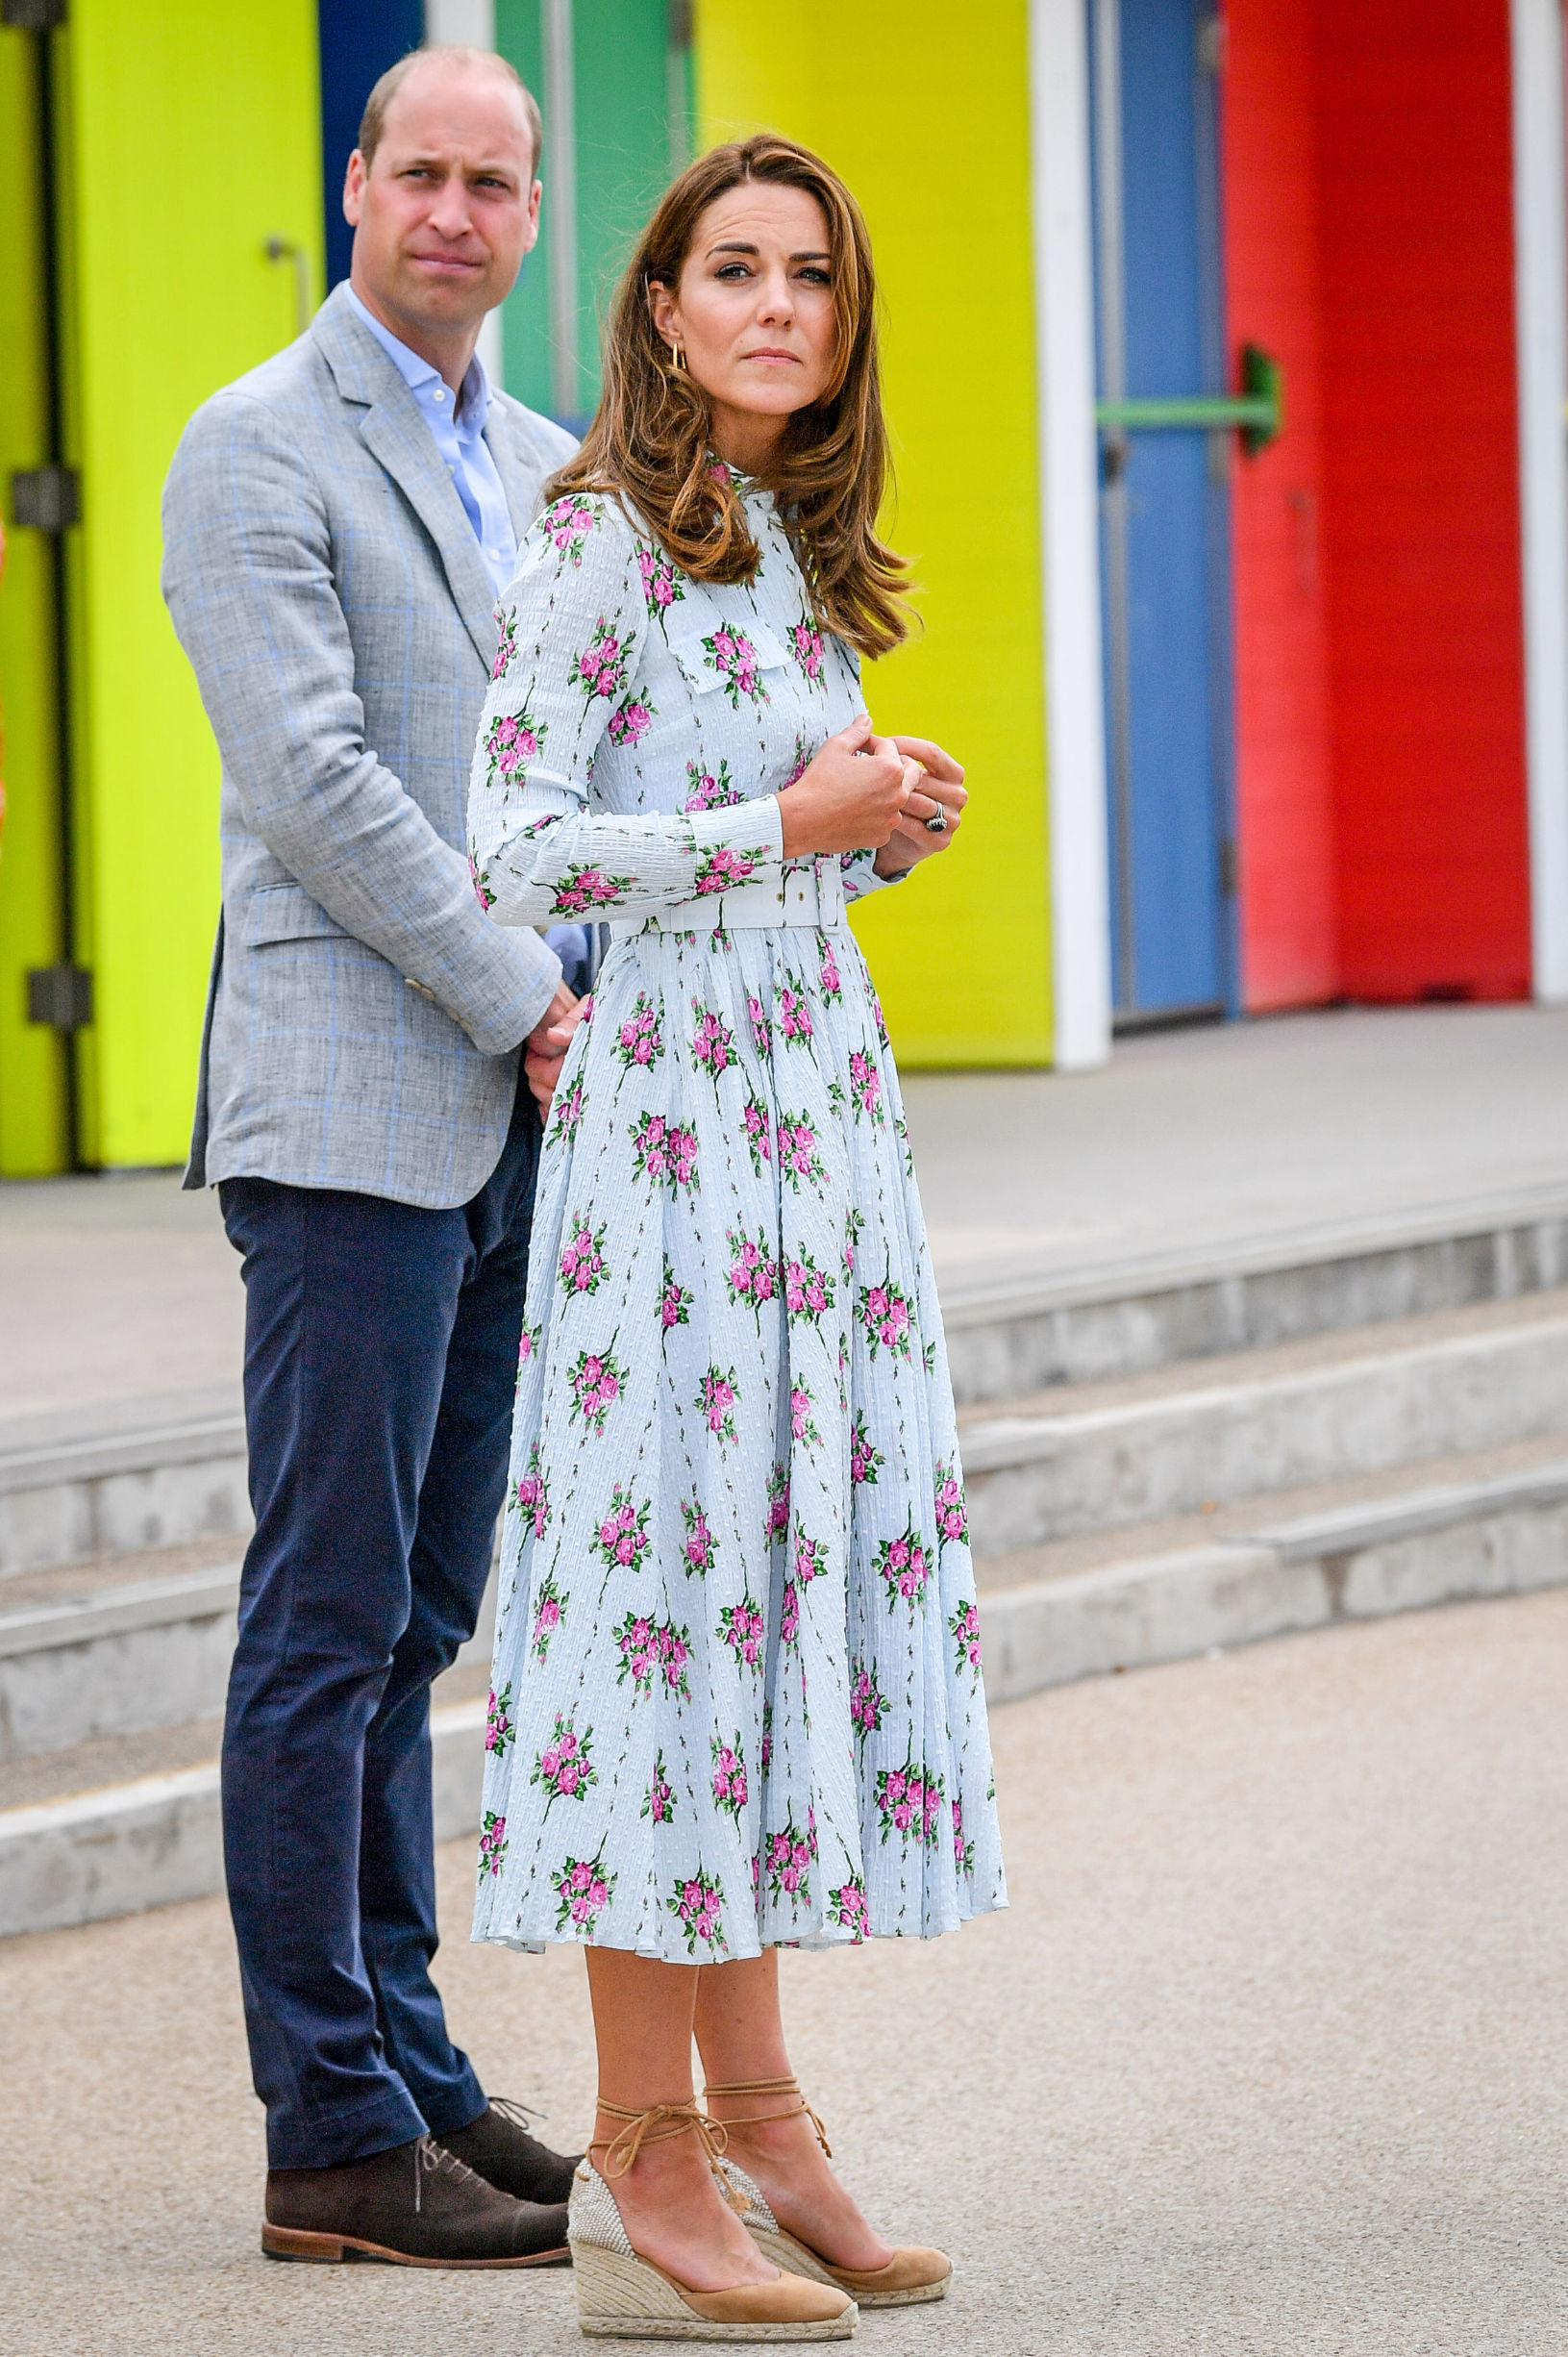 The Duke and Catherine Duchess of Cambridge on the promenade as they visit beach huts, during their visit to Barry Island, South Wales, to speak to local business owners about the impact of Covid-19 on the tourism sector The Duke and Duchess of Cambridge visit Barry Island, South Wales, Uk - 05 Aug 2020,Image: 550116953, License: Rights-managed, Restrictions: , Model Release: no, Credit line: - / Shutterstock Editorial / Profimedia